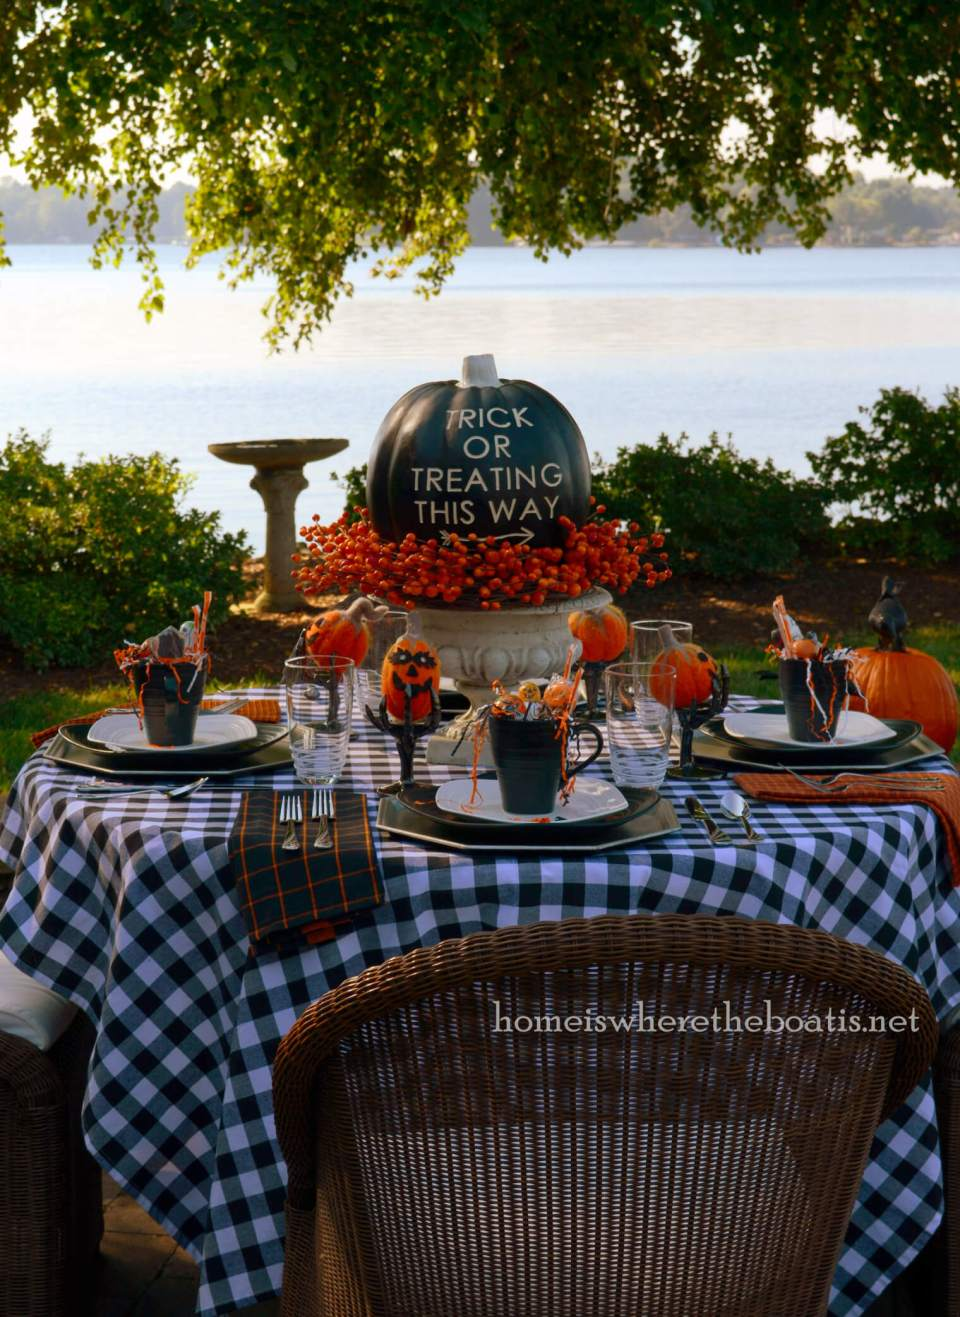 This Way to Trick or Treating | Fun & Spooky Halloween Table Decoration Ideas - FarmFoodFamily.com